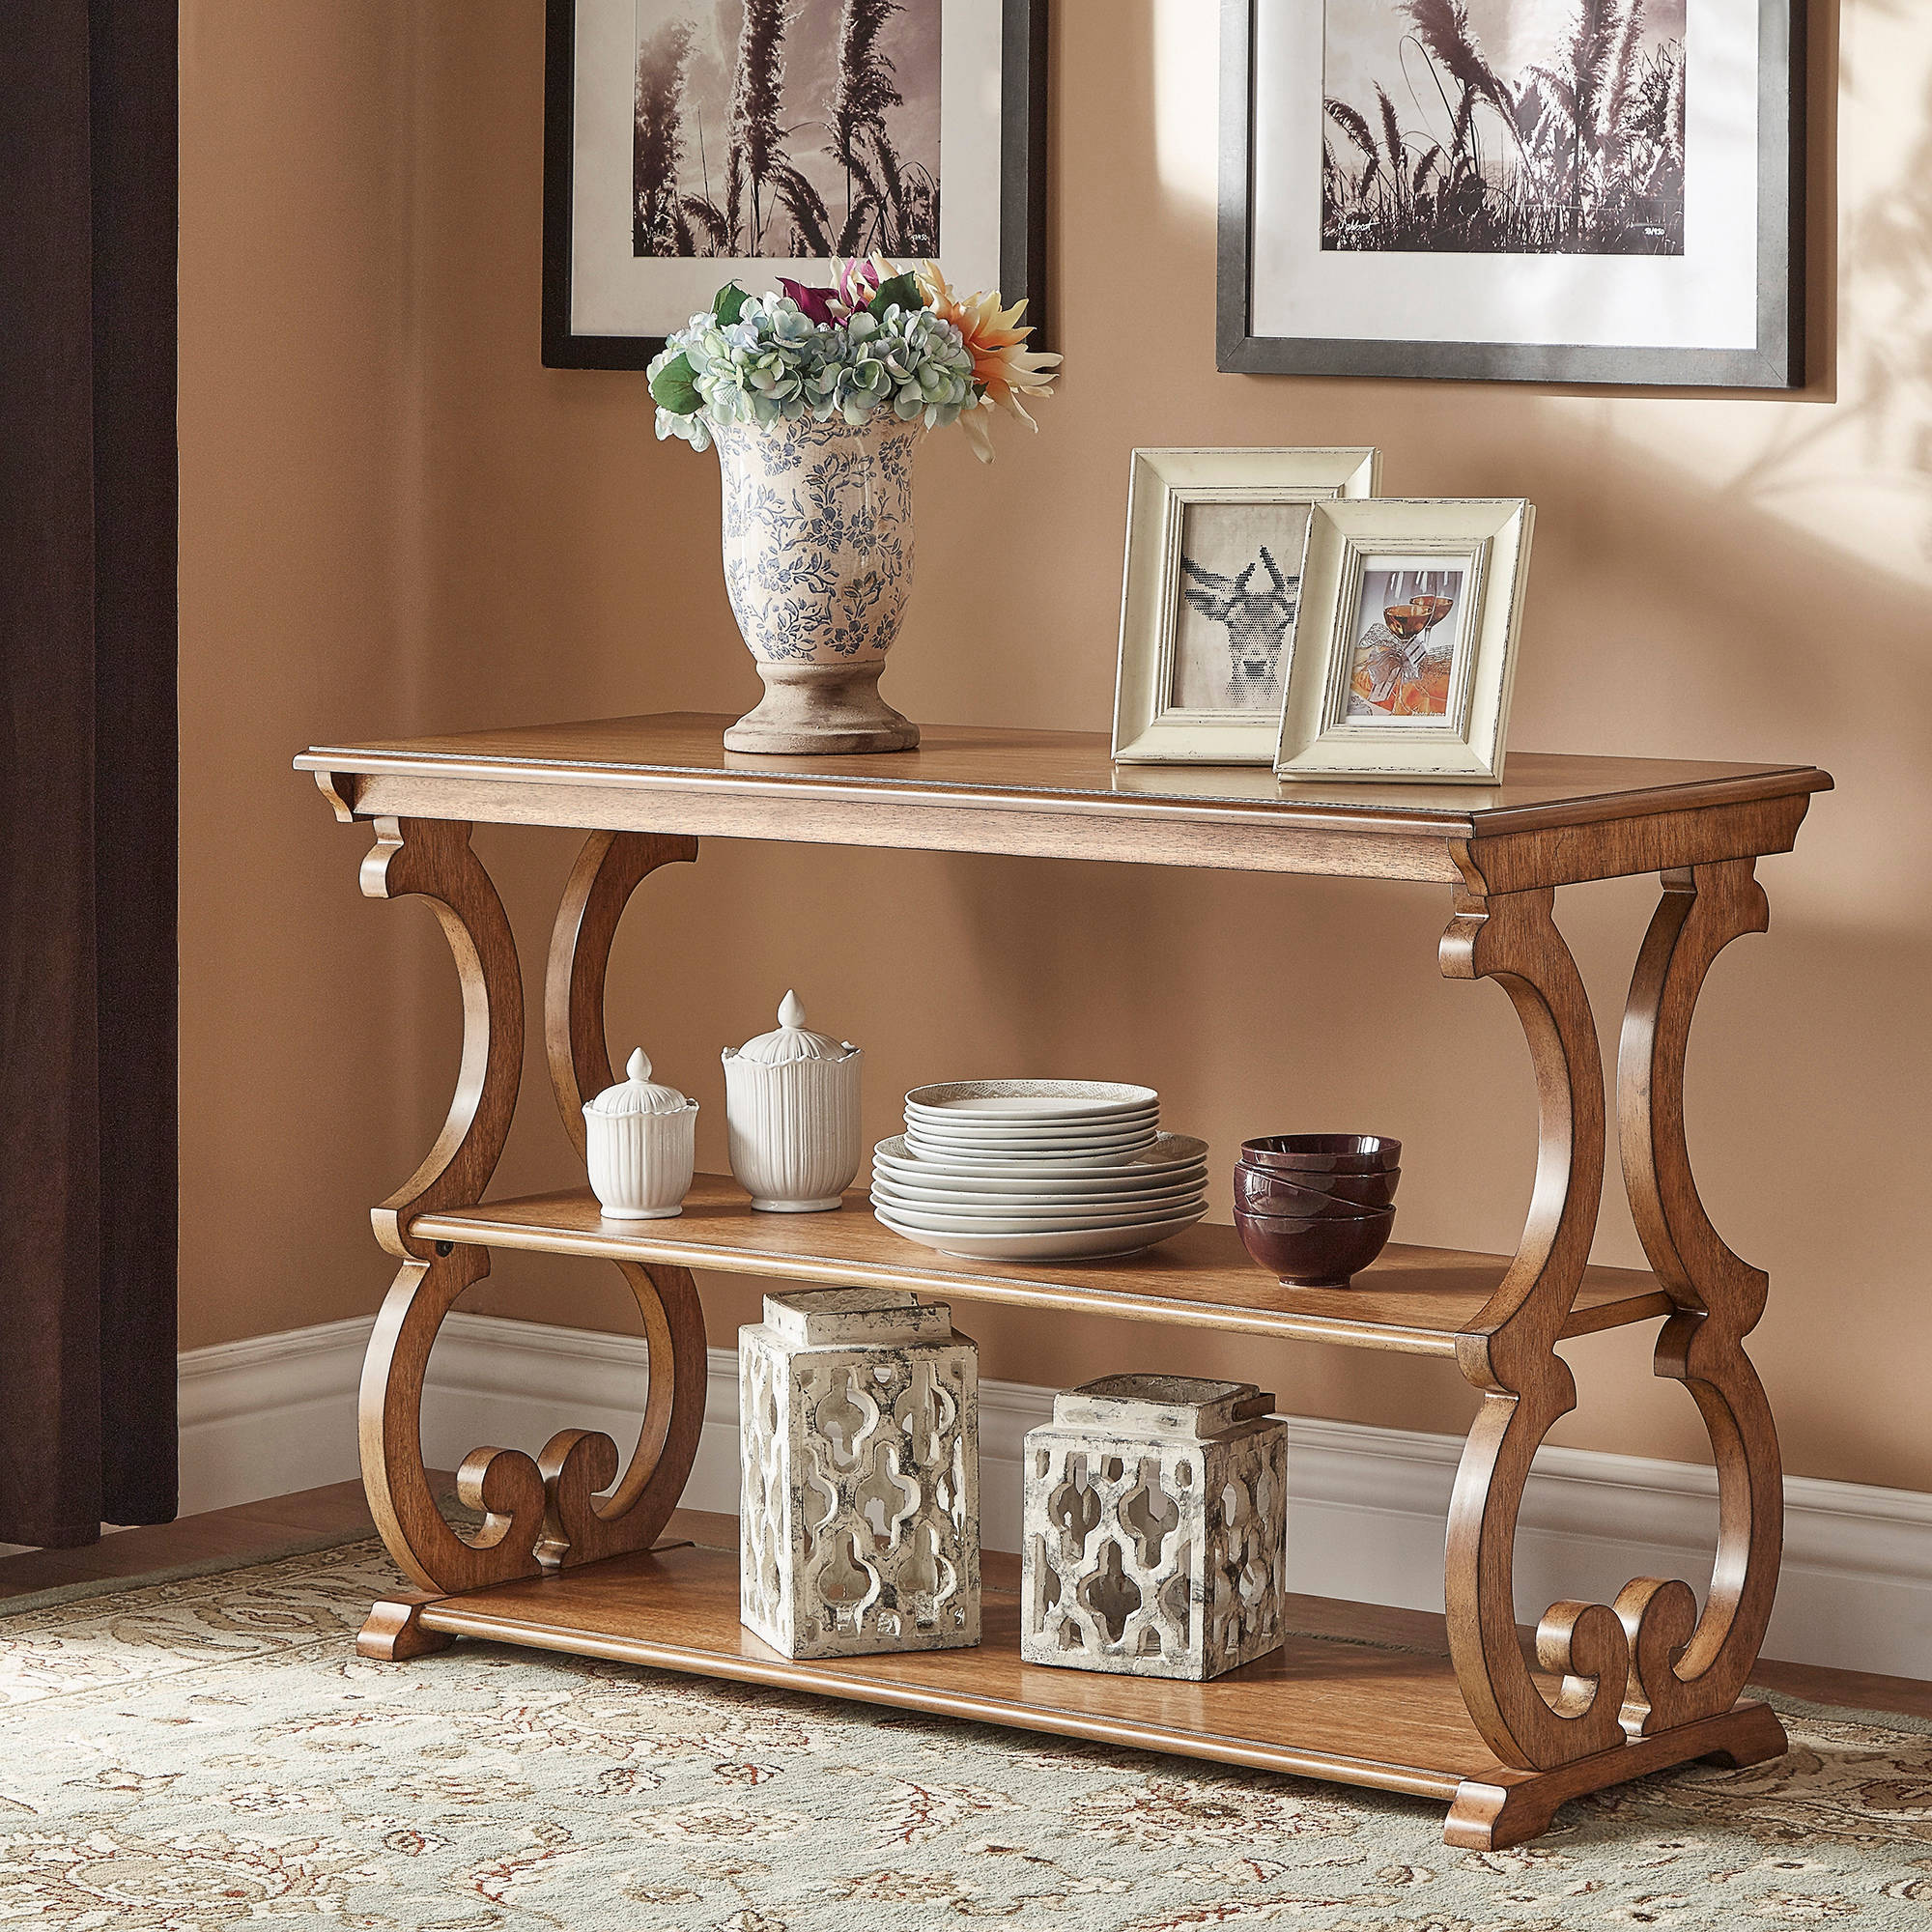 Weston Home Caden Sofa Table, Multiple Colors